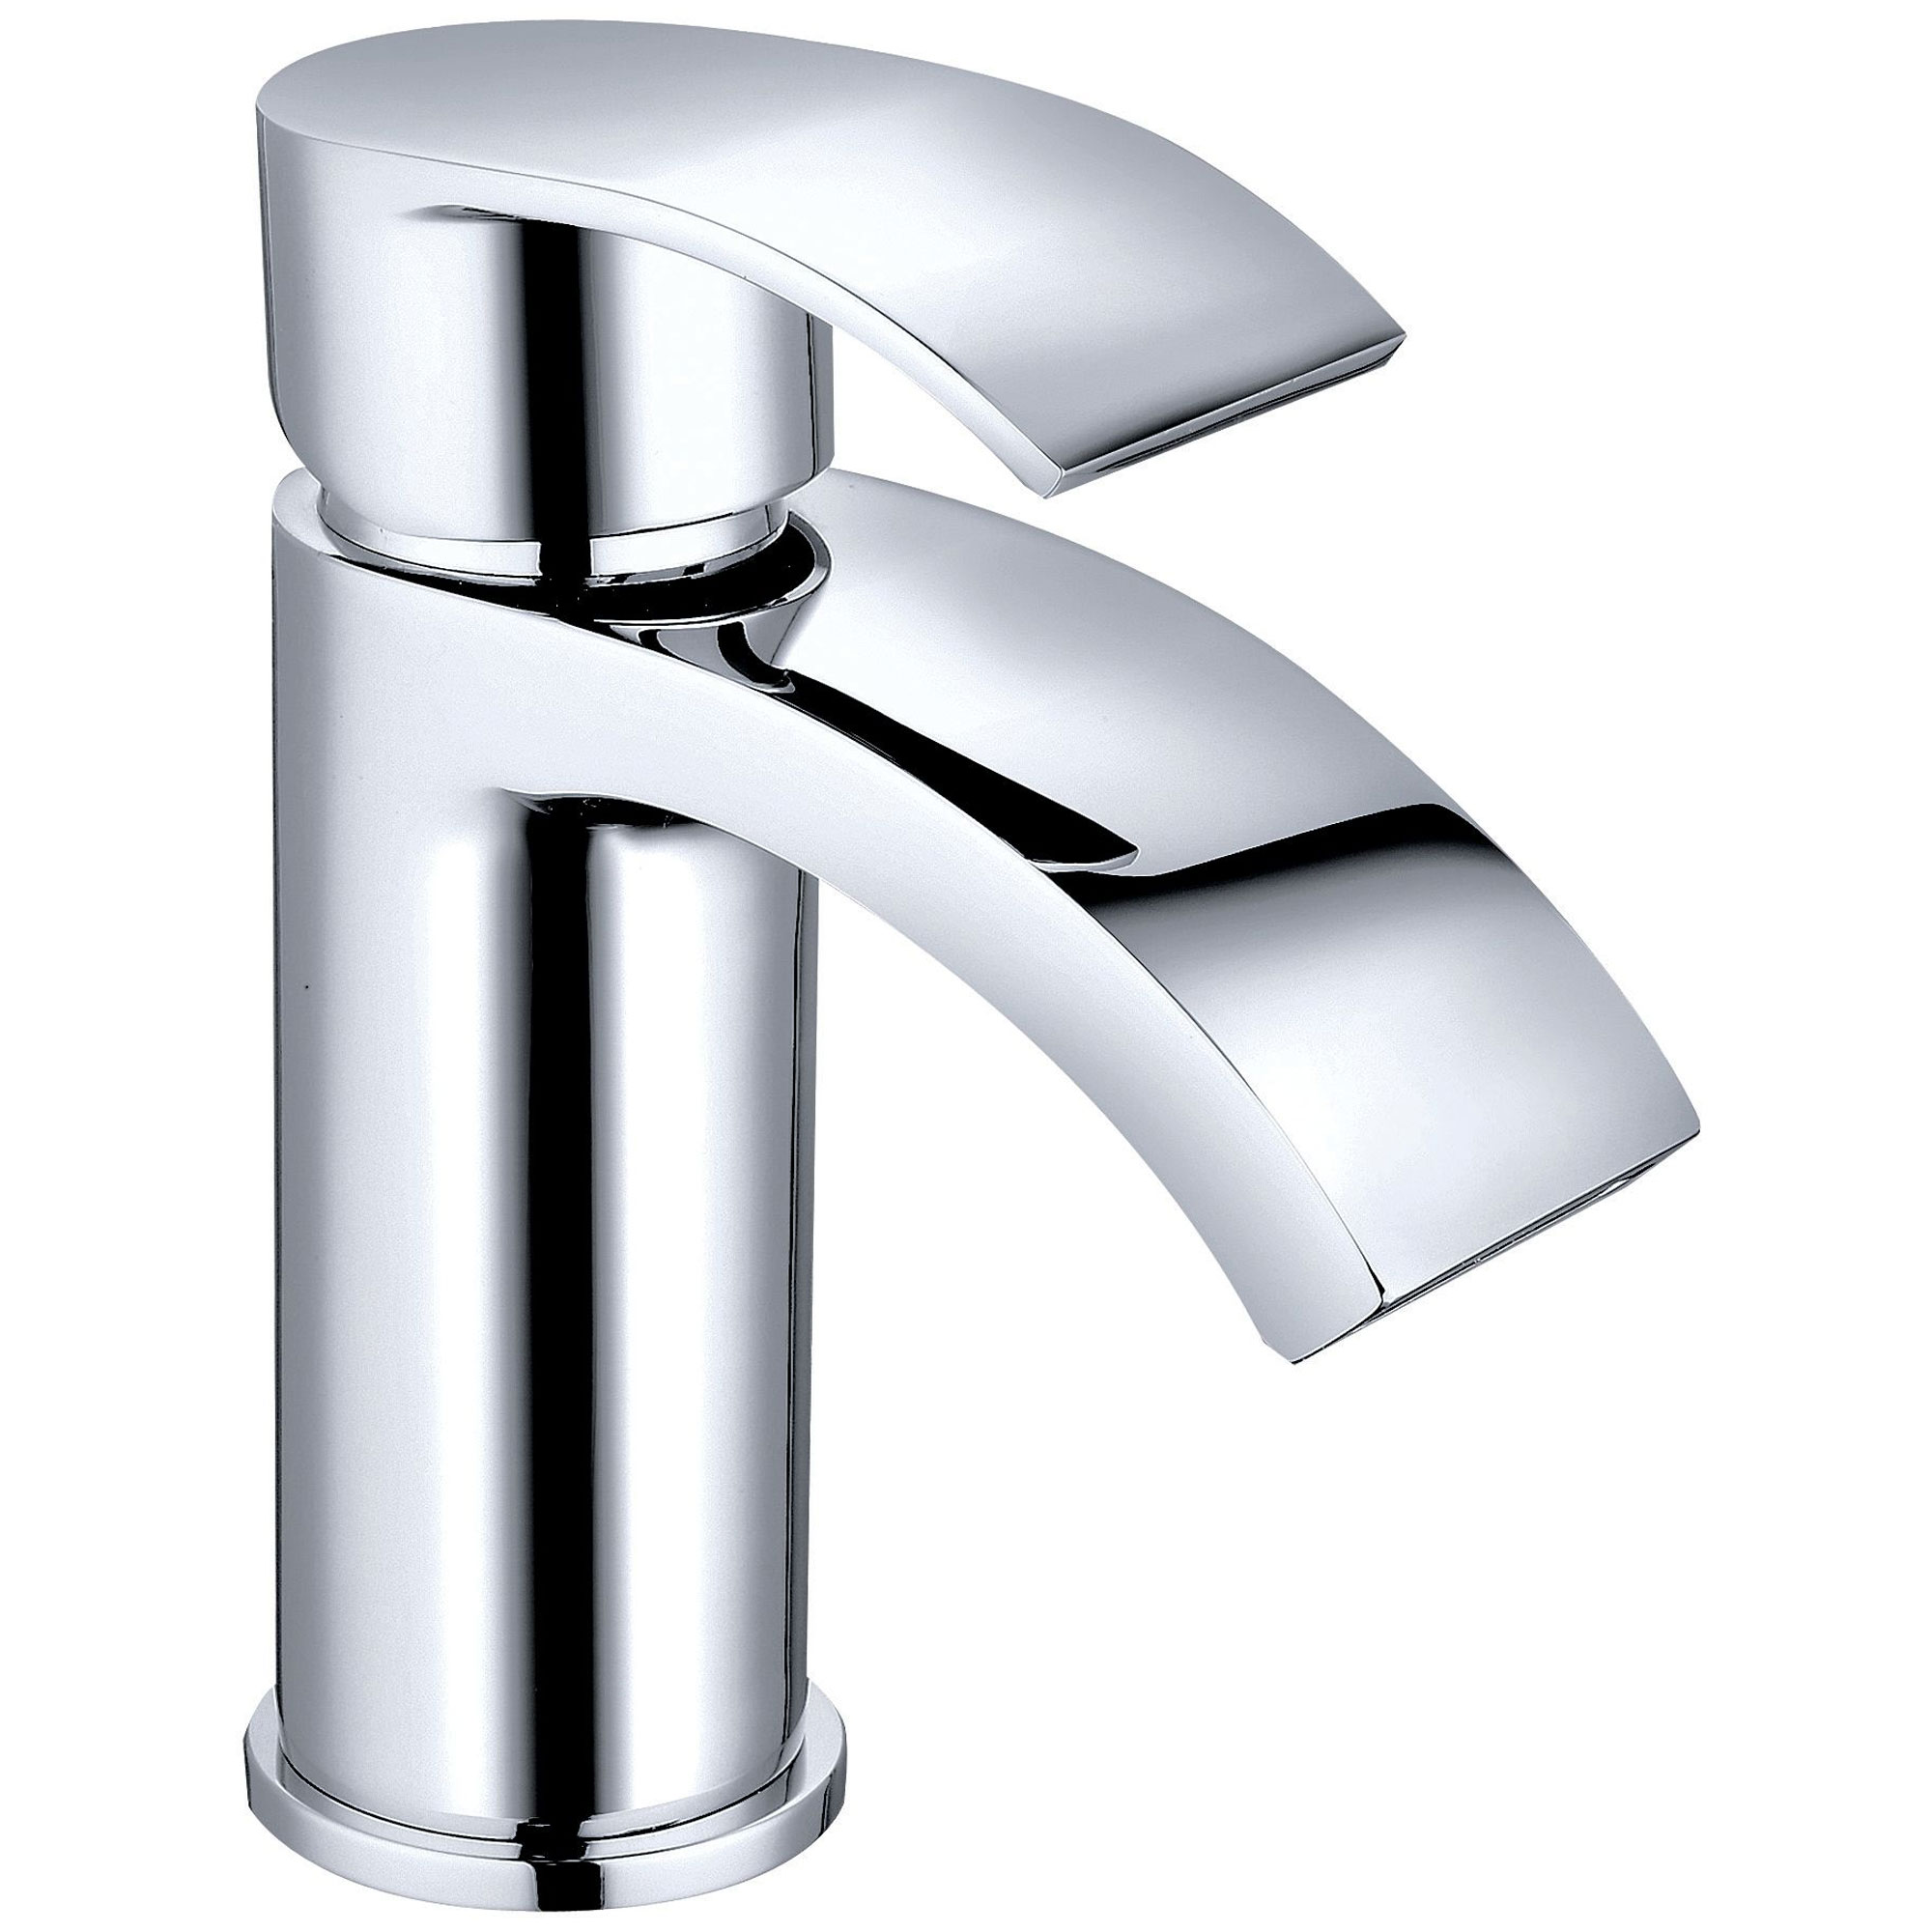 Cali Alia Mono Basin Mixer with Click Clack Waste - Lead Free - Chrome